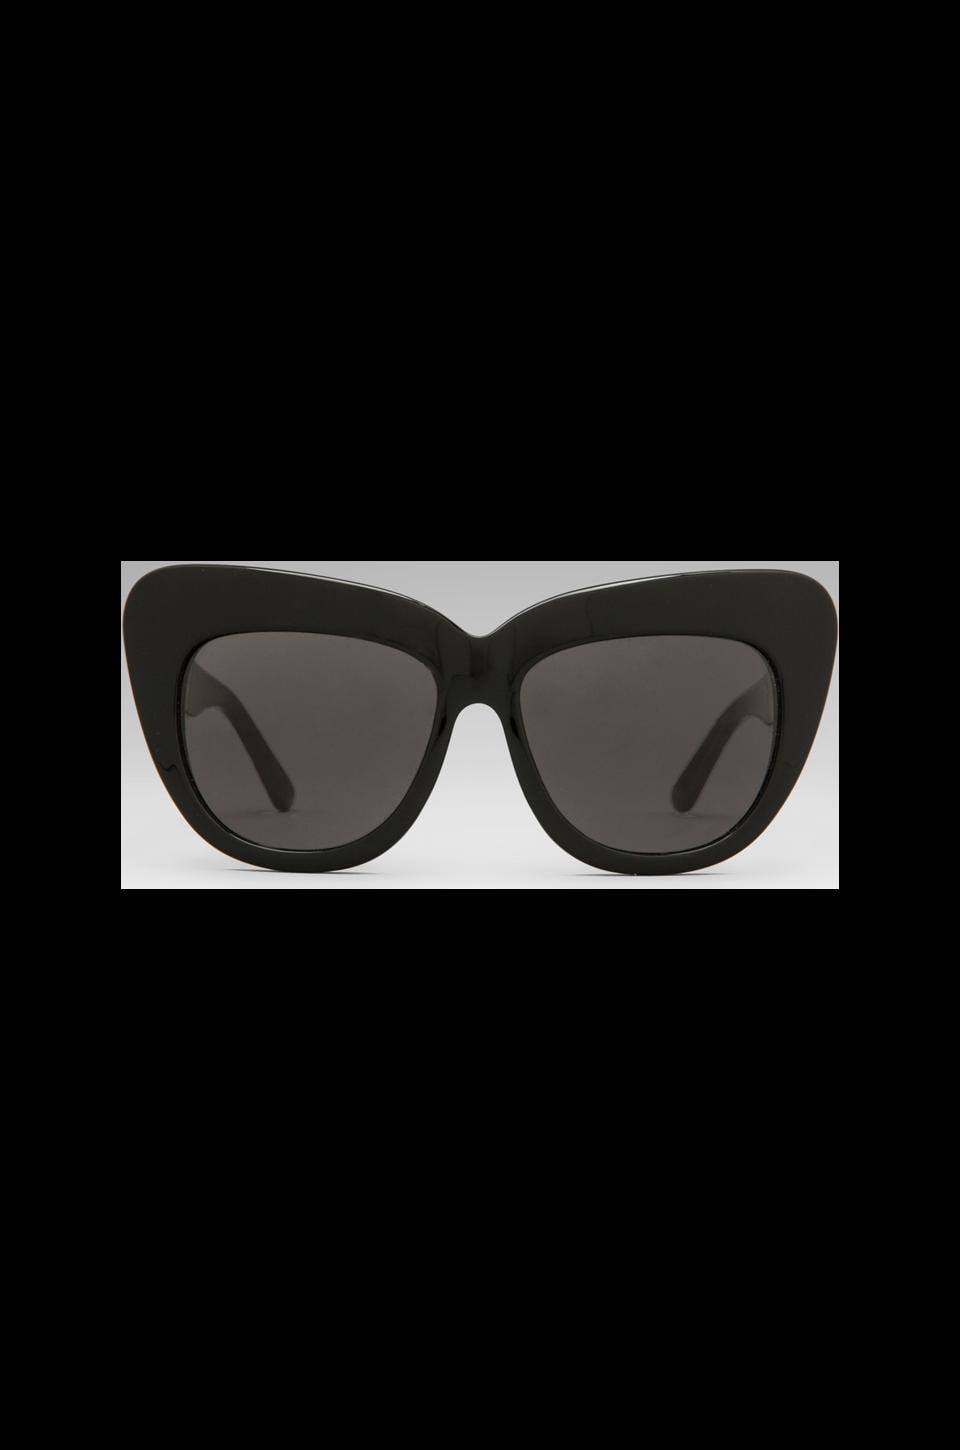 House of Harlow 1960 House of Harlow Chelsea Sunglasses in Black